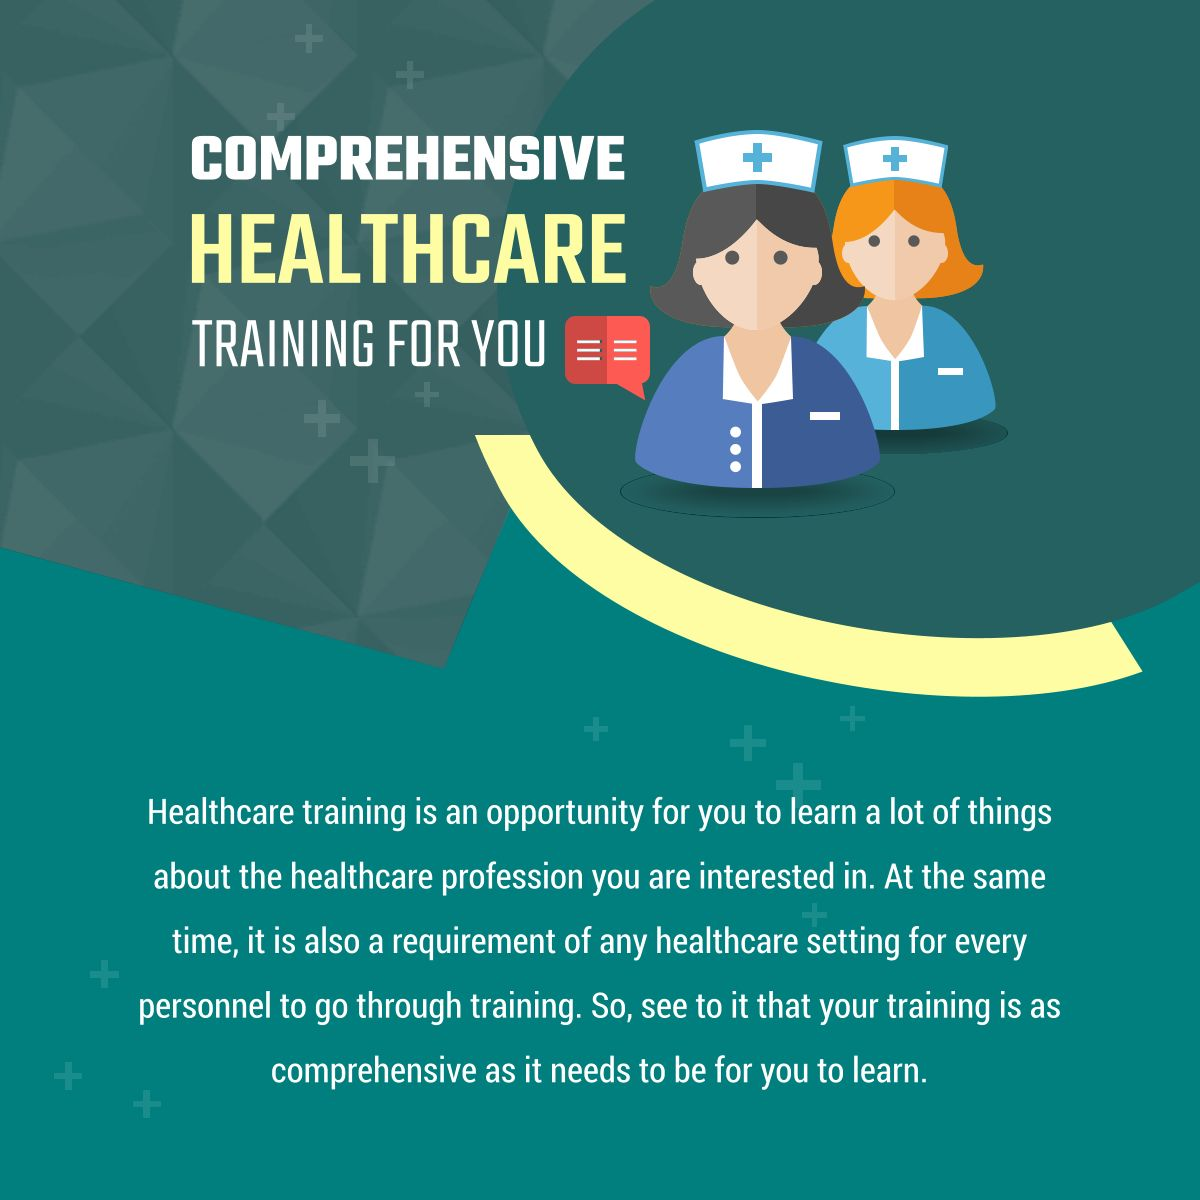 Comprehensive Healthcare Training for You. Visit www